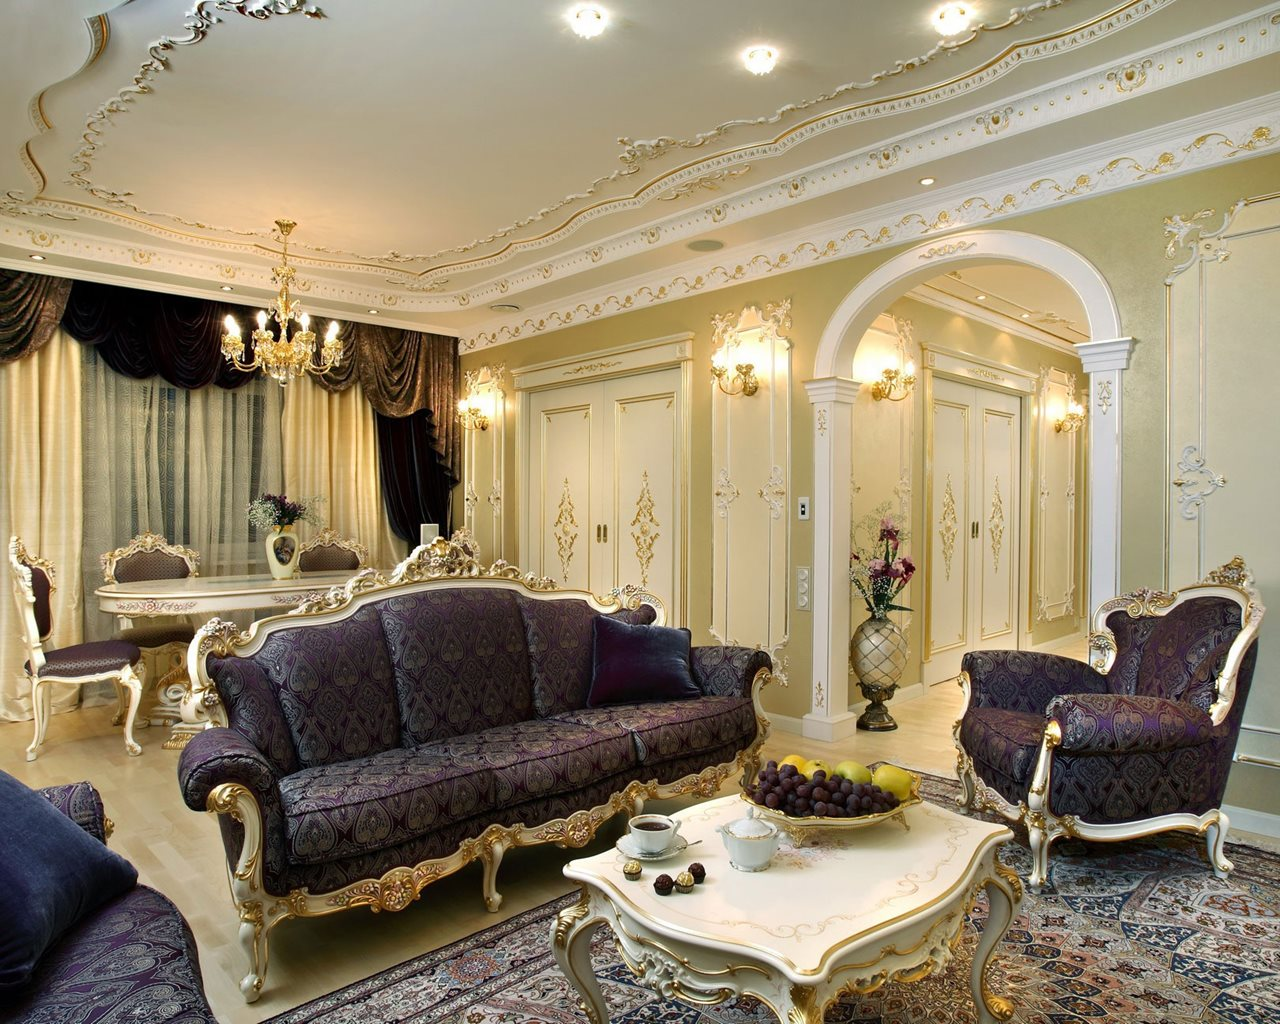 Baroque style interior design ideas for Interieur design